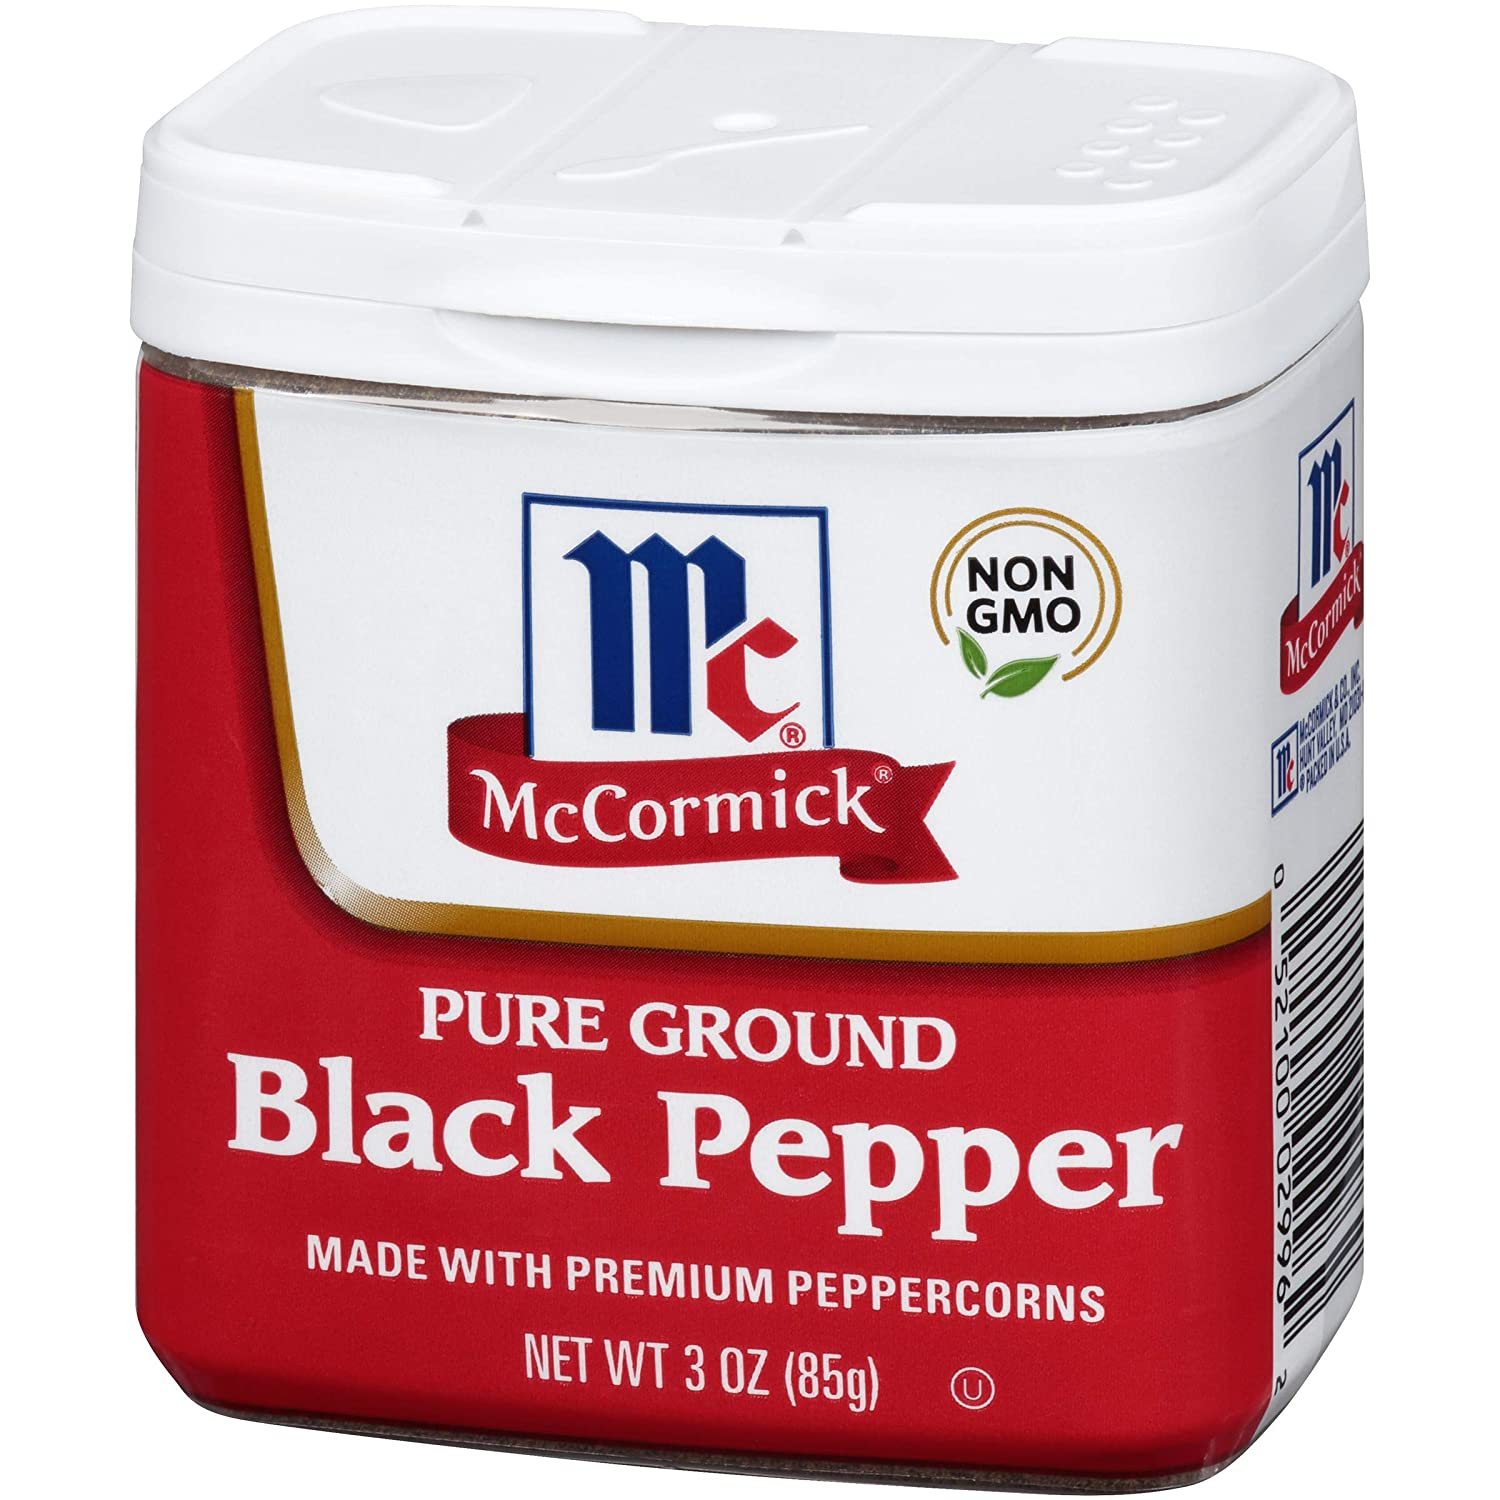 McCormick Classic Ground Black Pepper, Large Size, 3 Oz